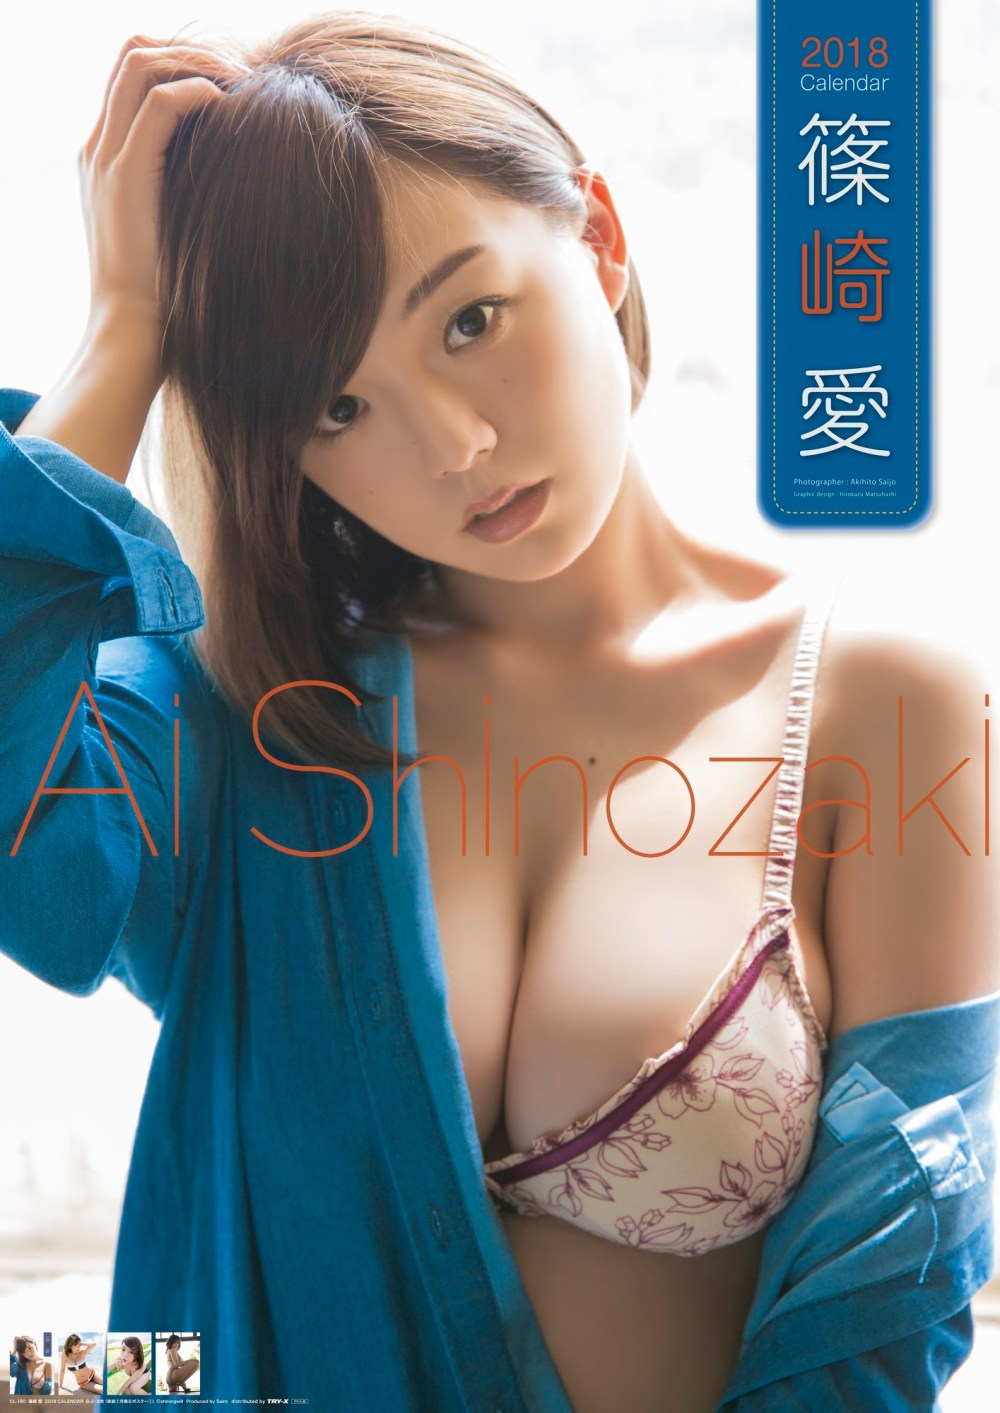 Shinozaki Ai – Calendario 2018